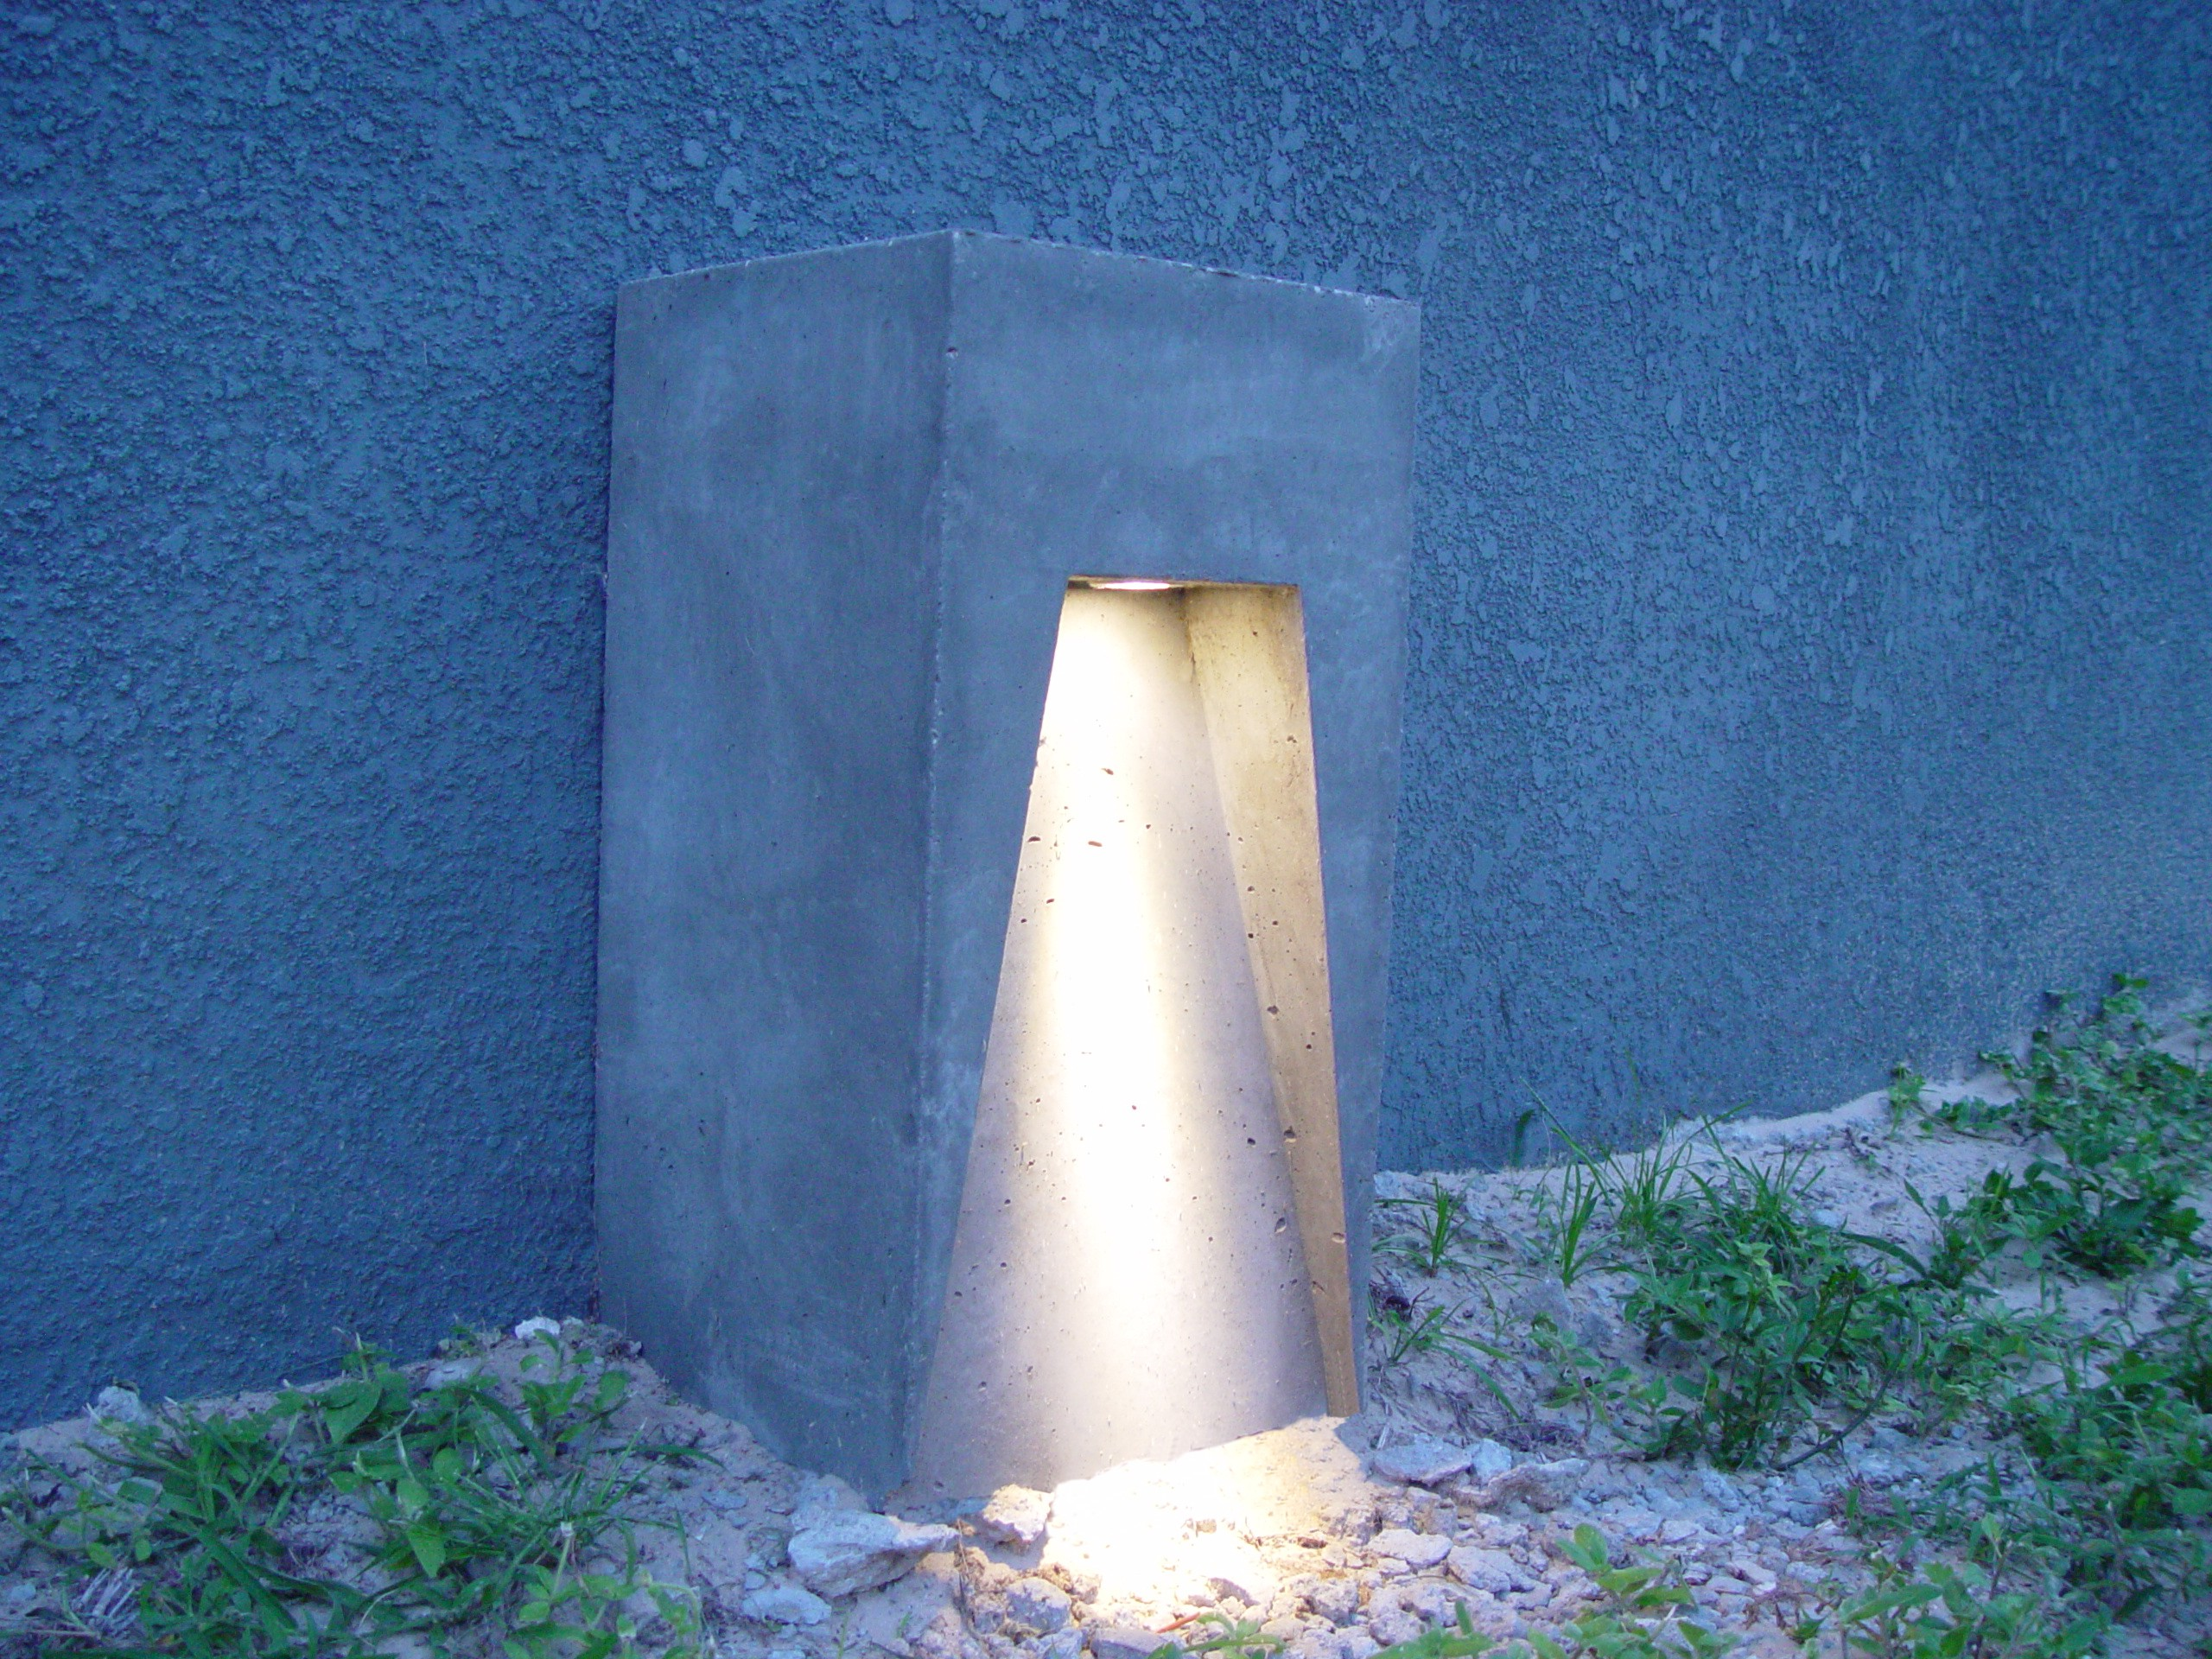 Concrete lighting